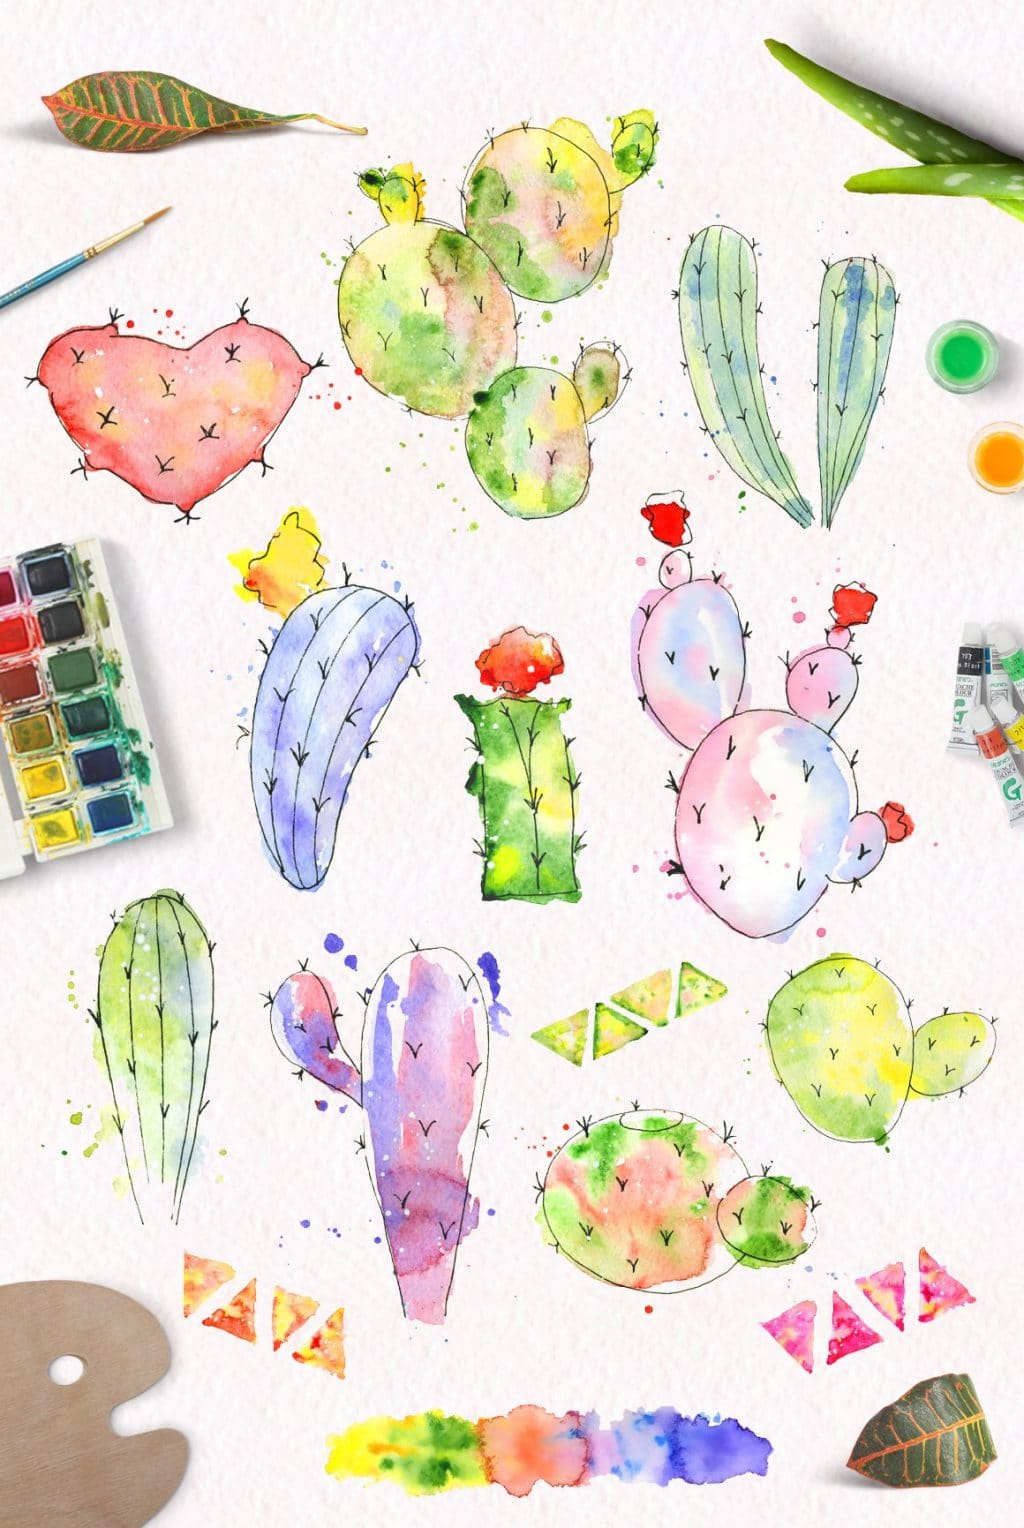 240+ Cactus Clipart 2021: Free and Premium Collections - cover 7 1